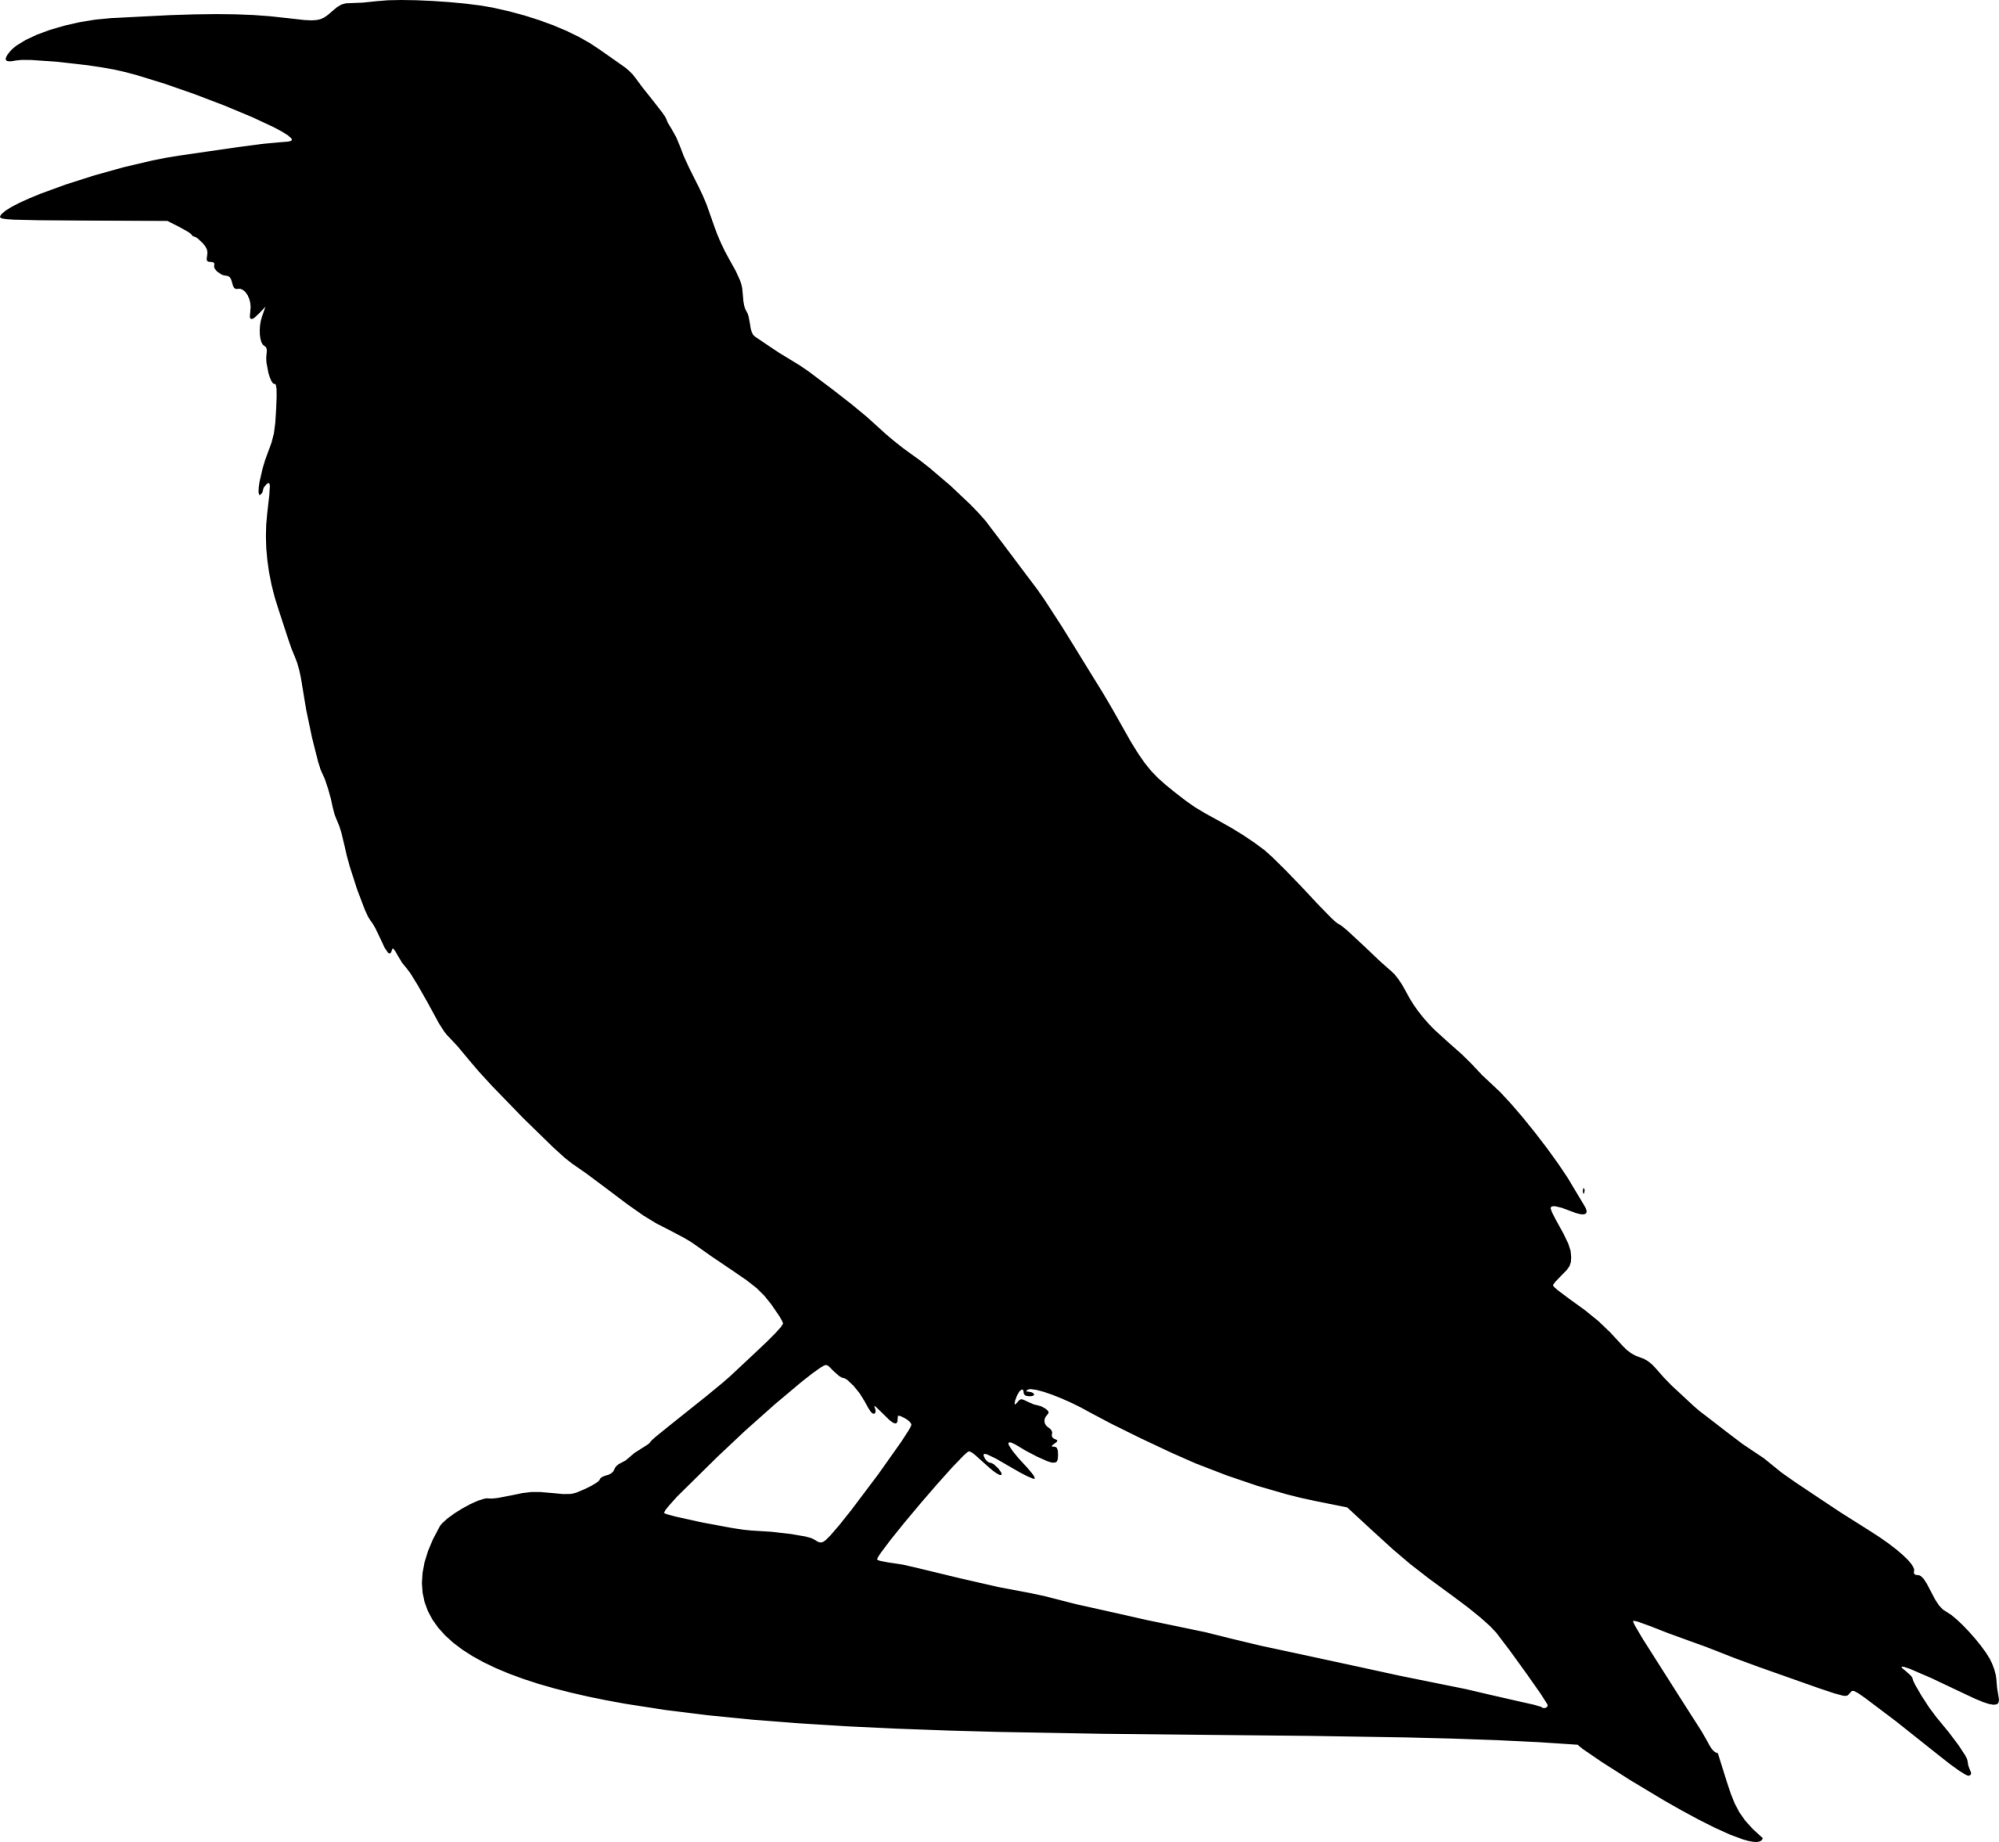 hight resolution of for crows clipart free images